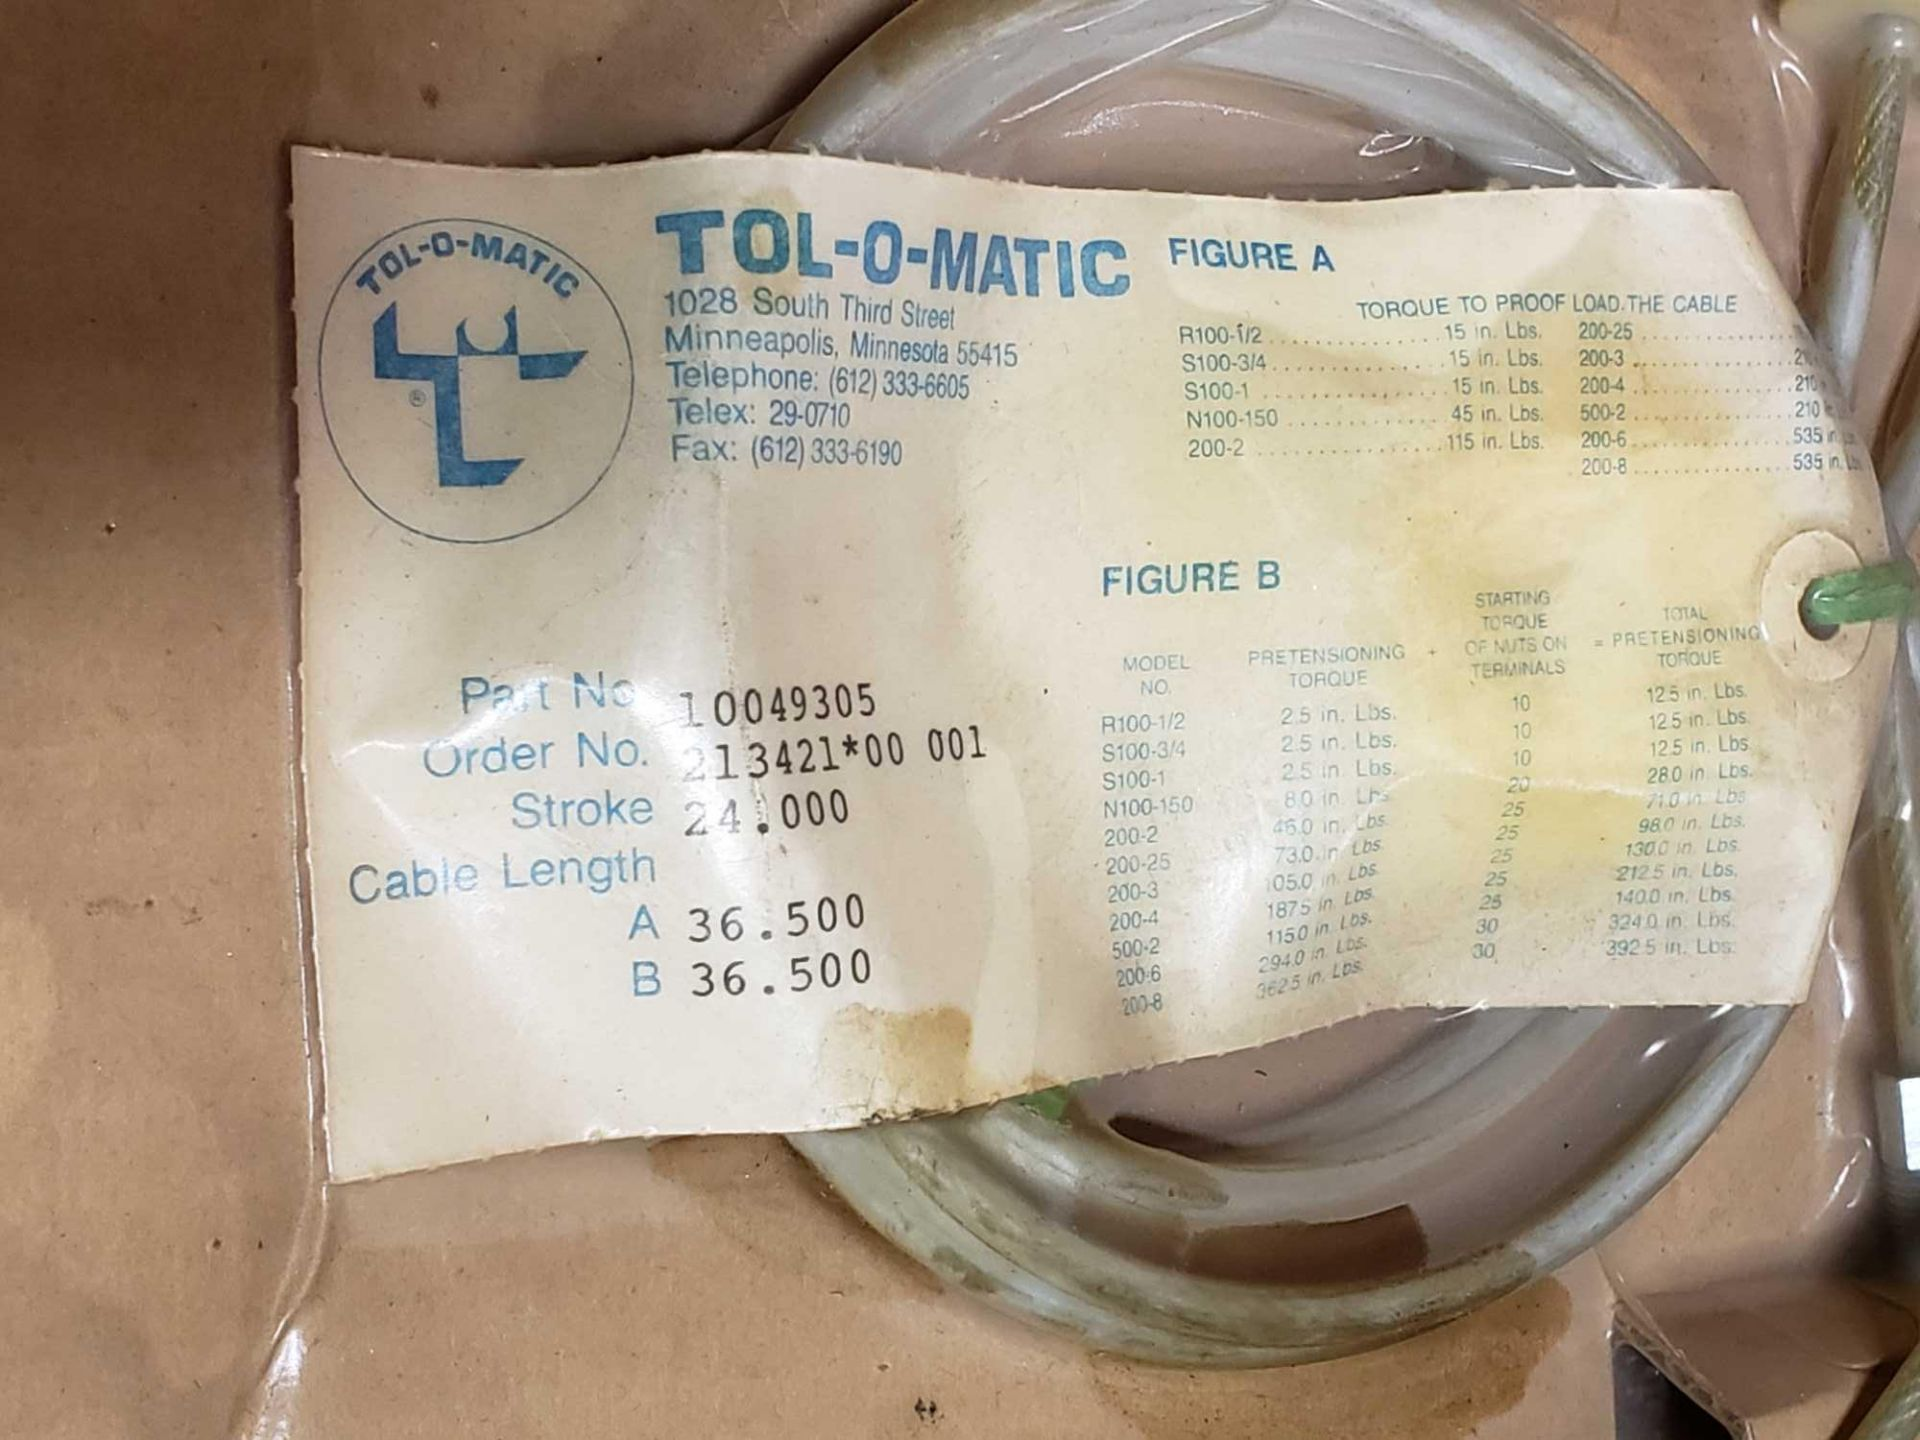 Lot 32 - Qty 5 - Assorted Tol-o-matic parts, new as pictured.